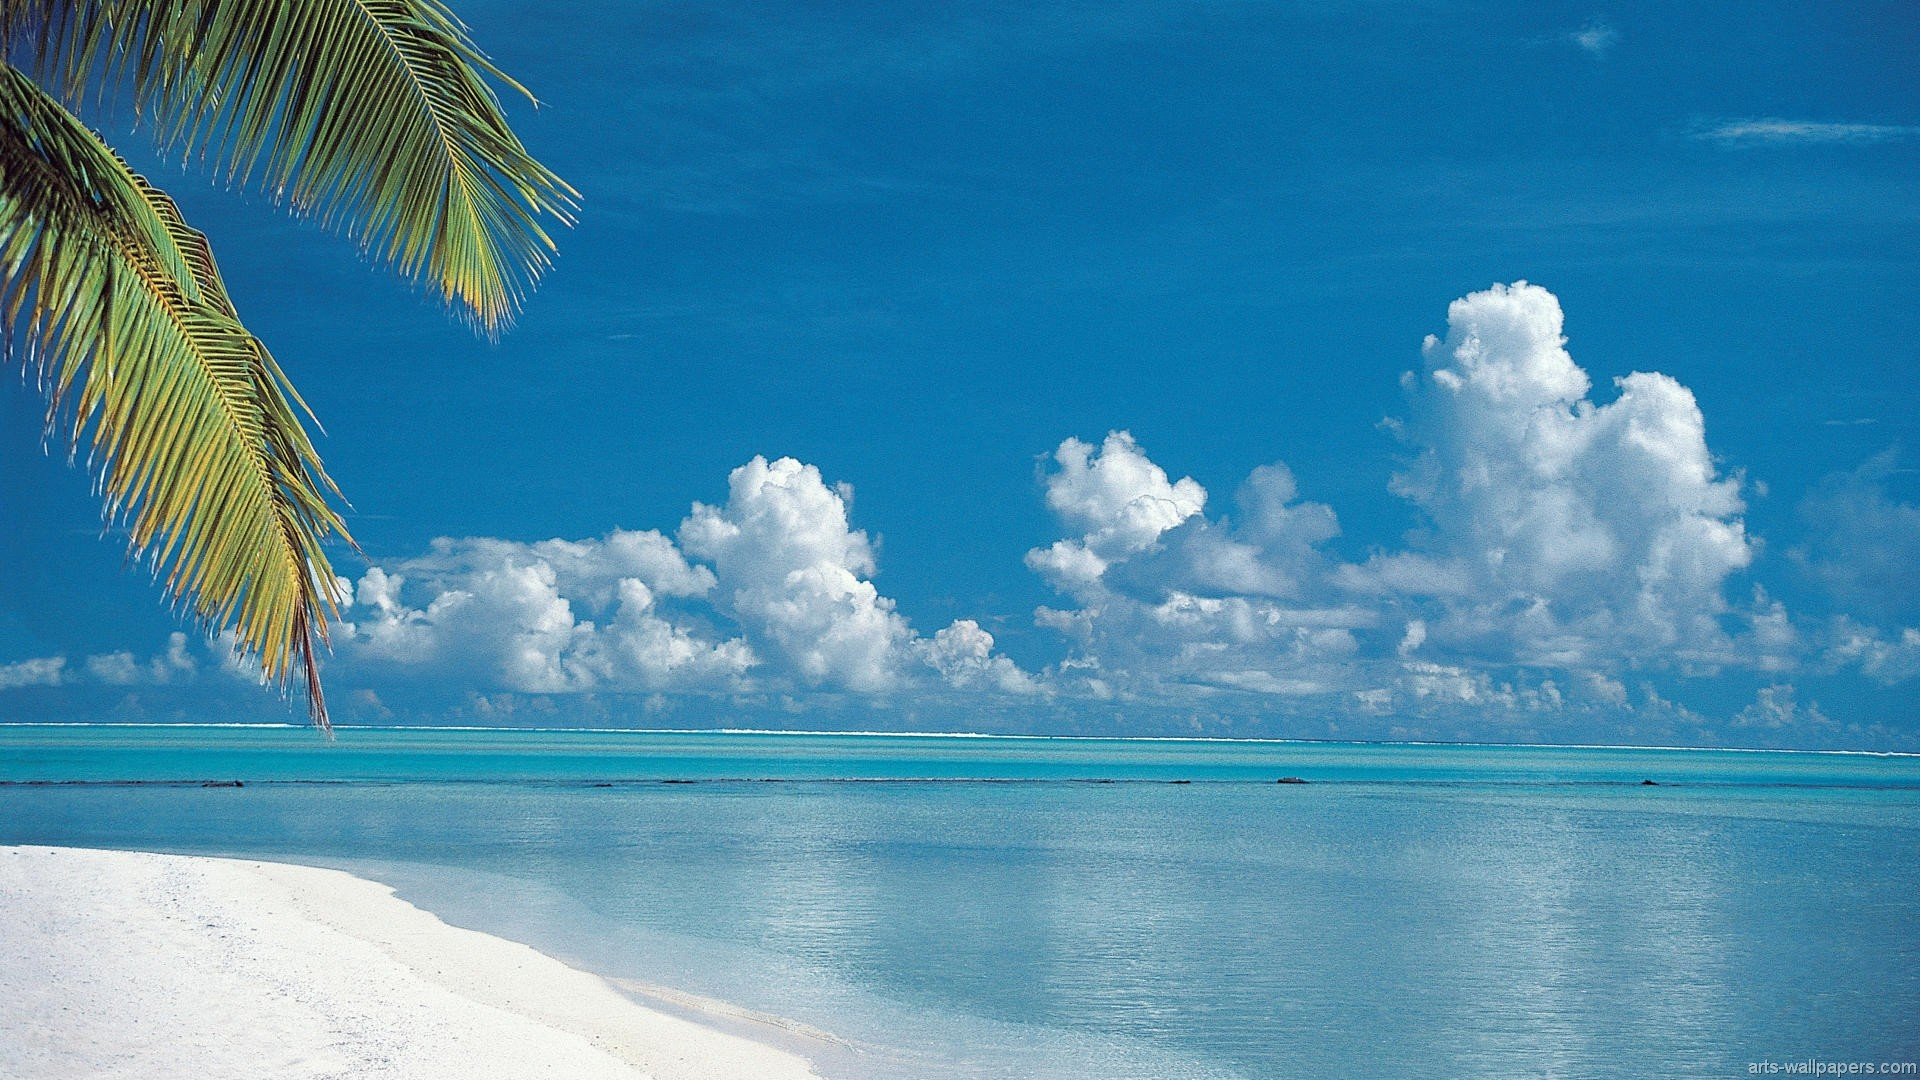 1920x1080 New Desktop Wallpapers (Tropical Beach, Aitutaki, Cook Islands)